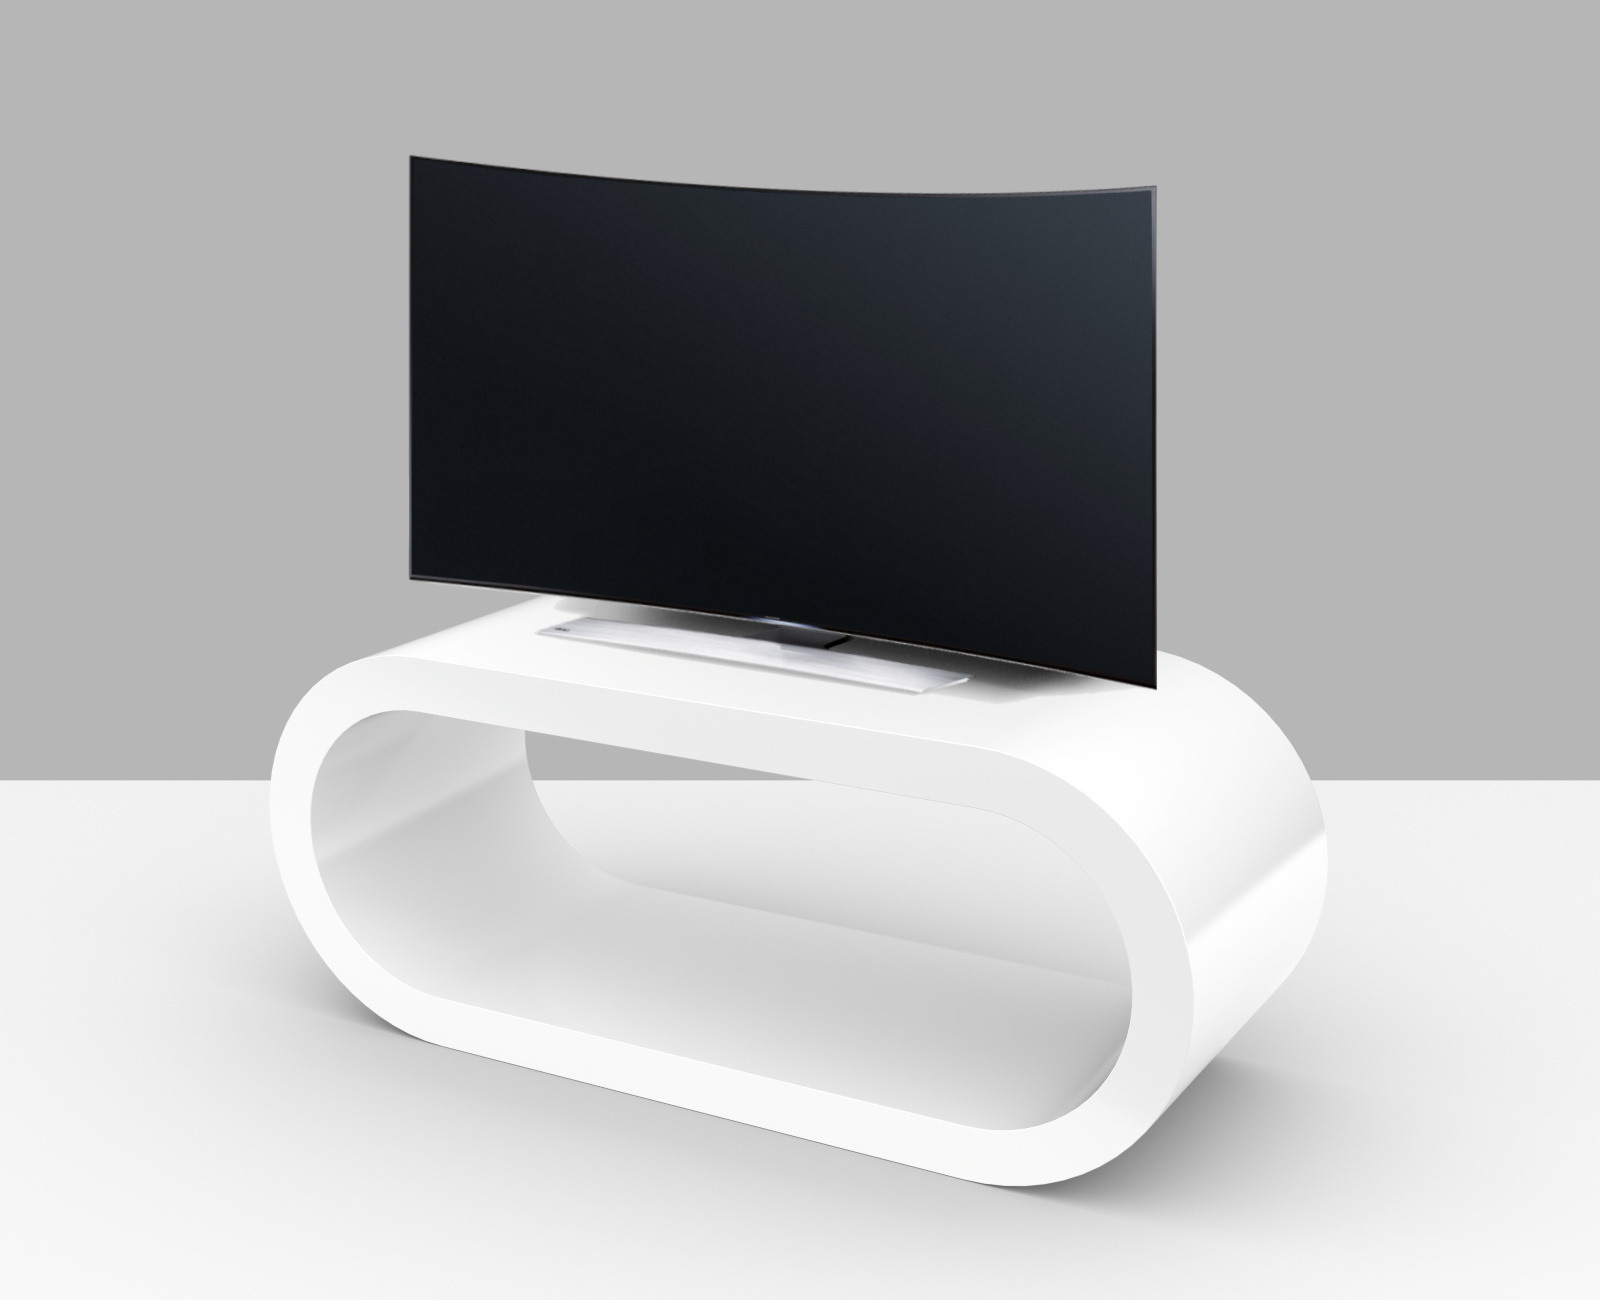 White Gloss Oval Tv Stands Inside Most Current Custom Tv Stands (View 17 of 20)